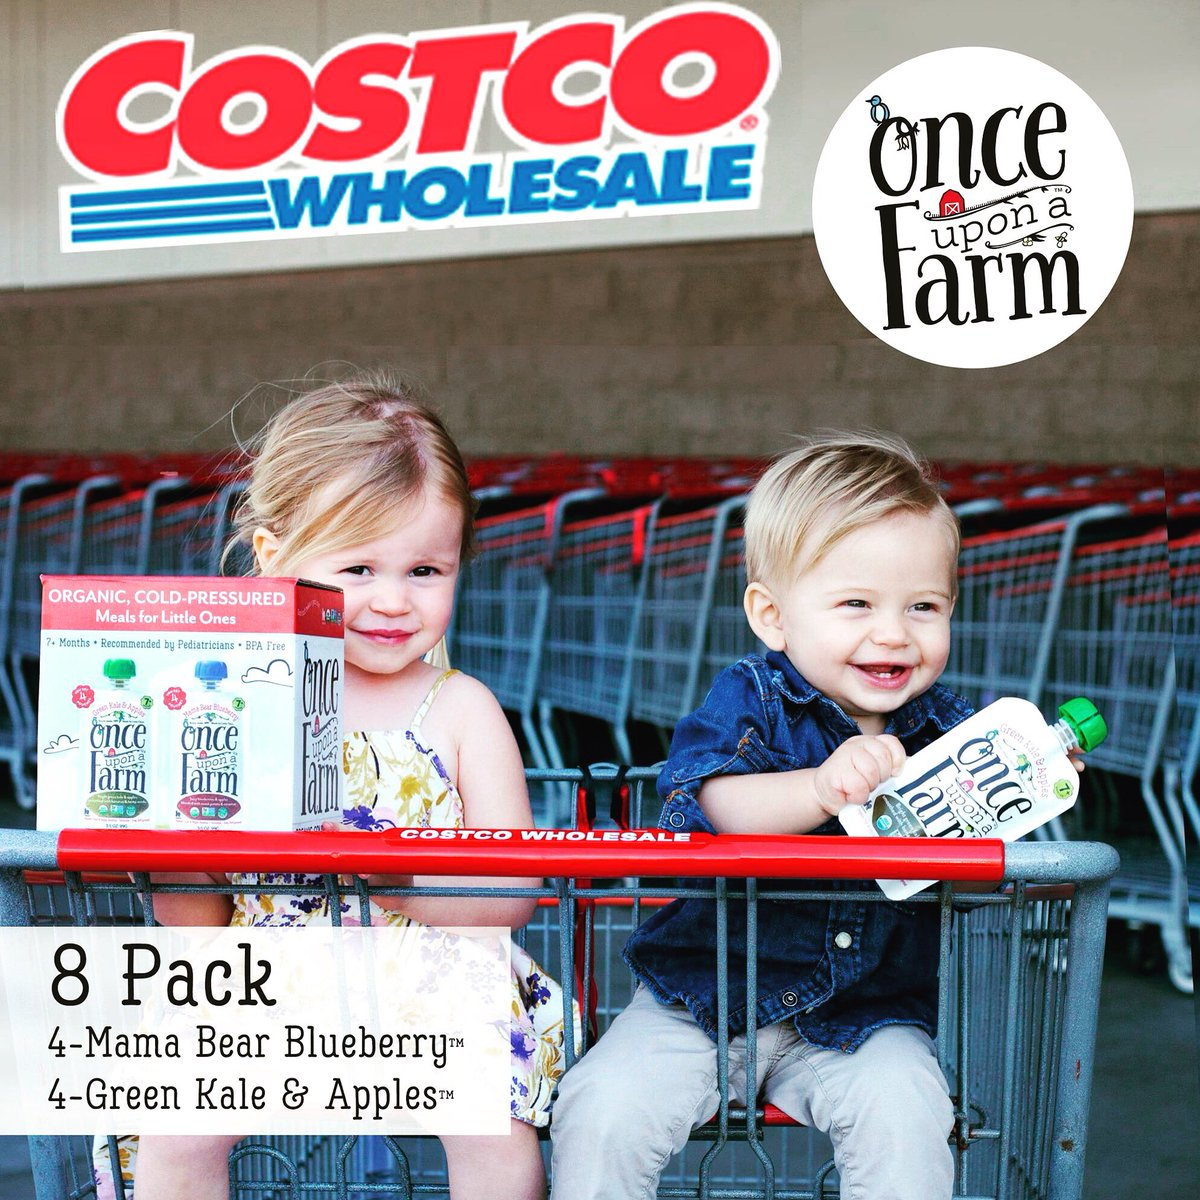 Once Upon A Farm On Twitter Costco Carlsbad Carmel Mountain Mission Valley San Marcos Morena Blvd Find Us In The Refrigerated Section